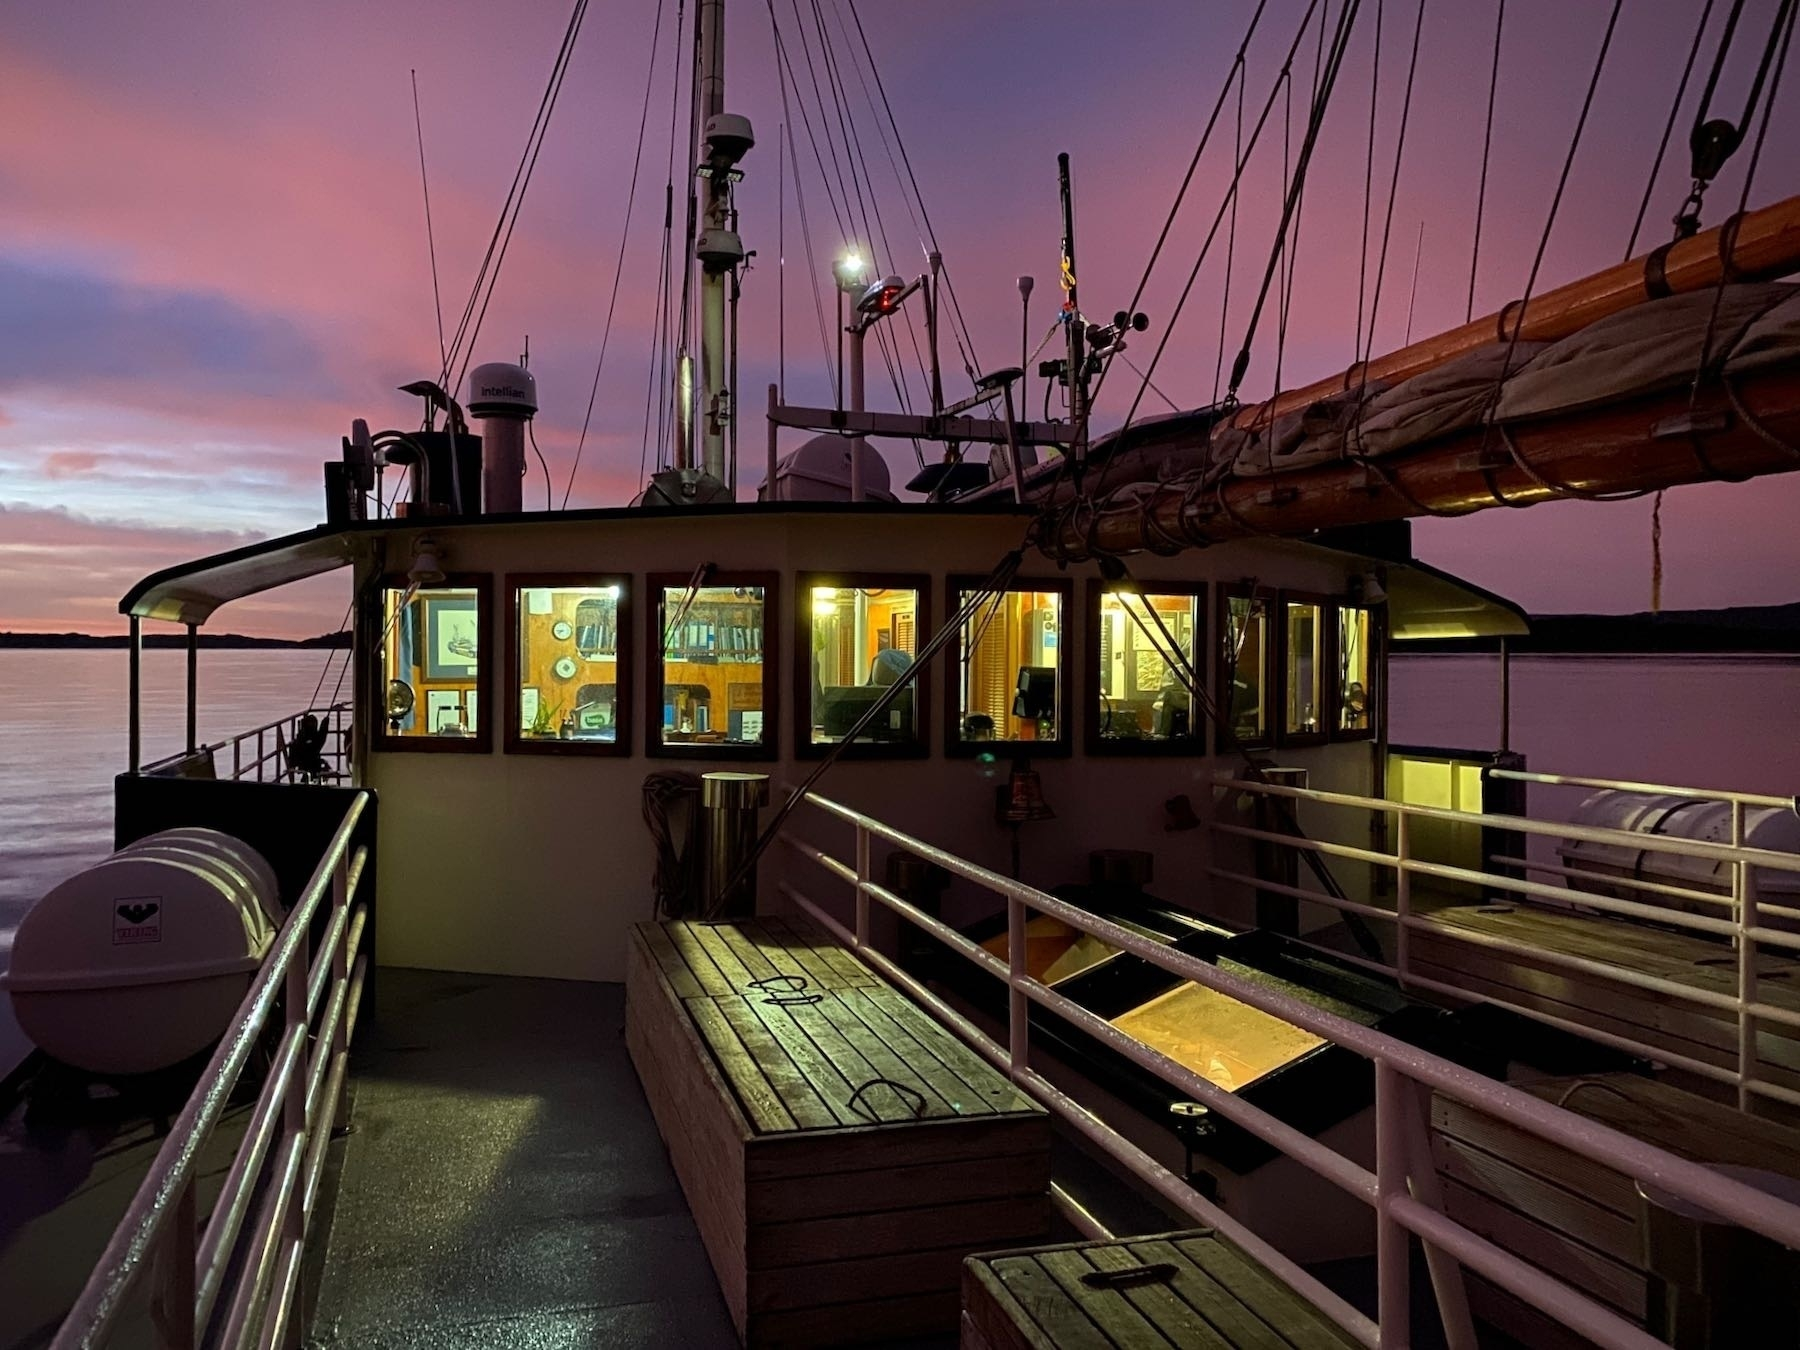 The wheelhouse from the deck of the Milford Wanderer.